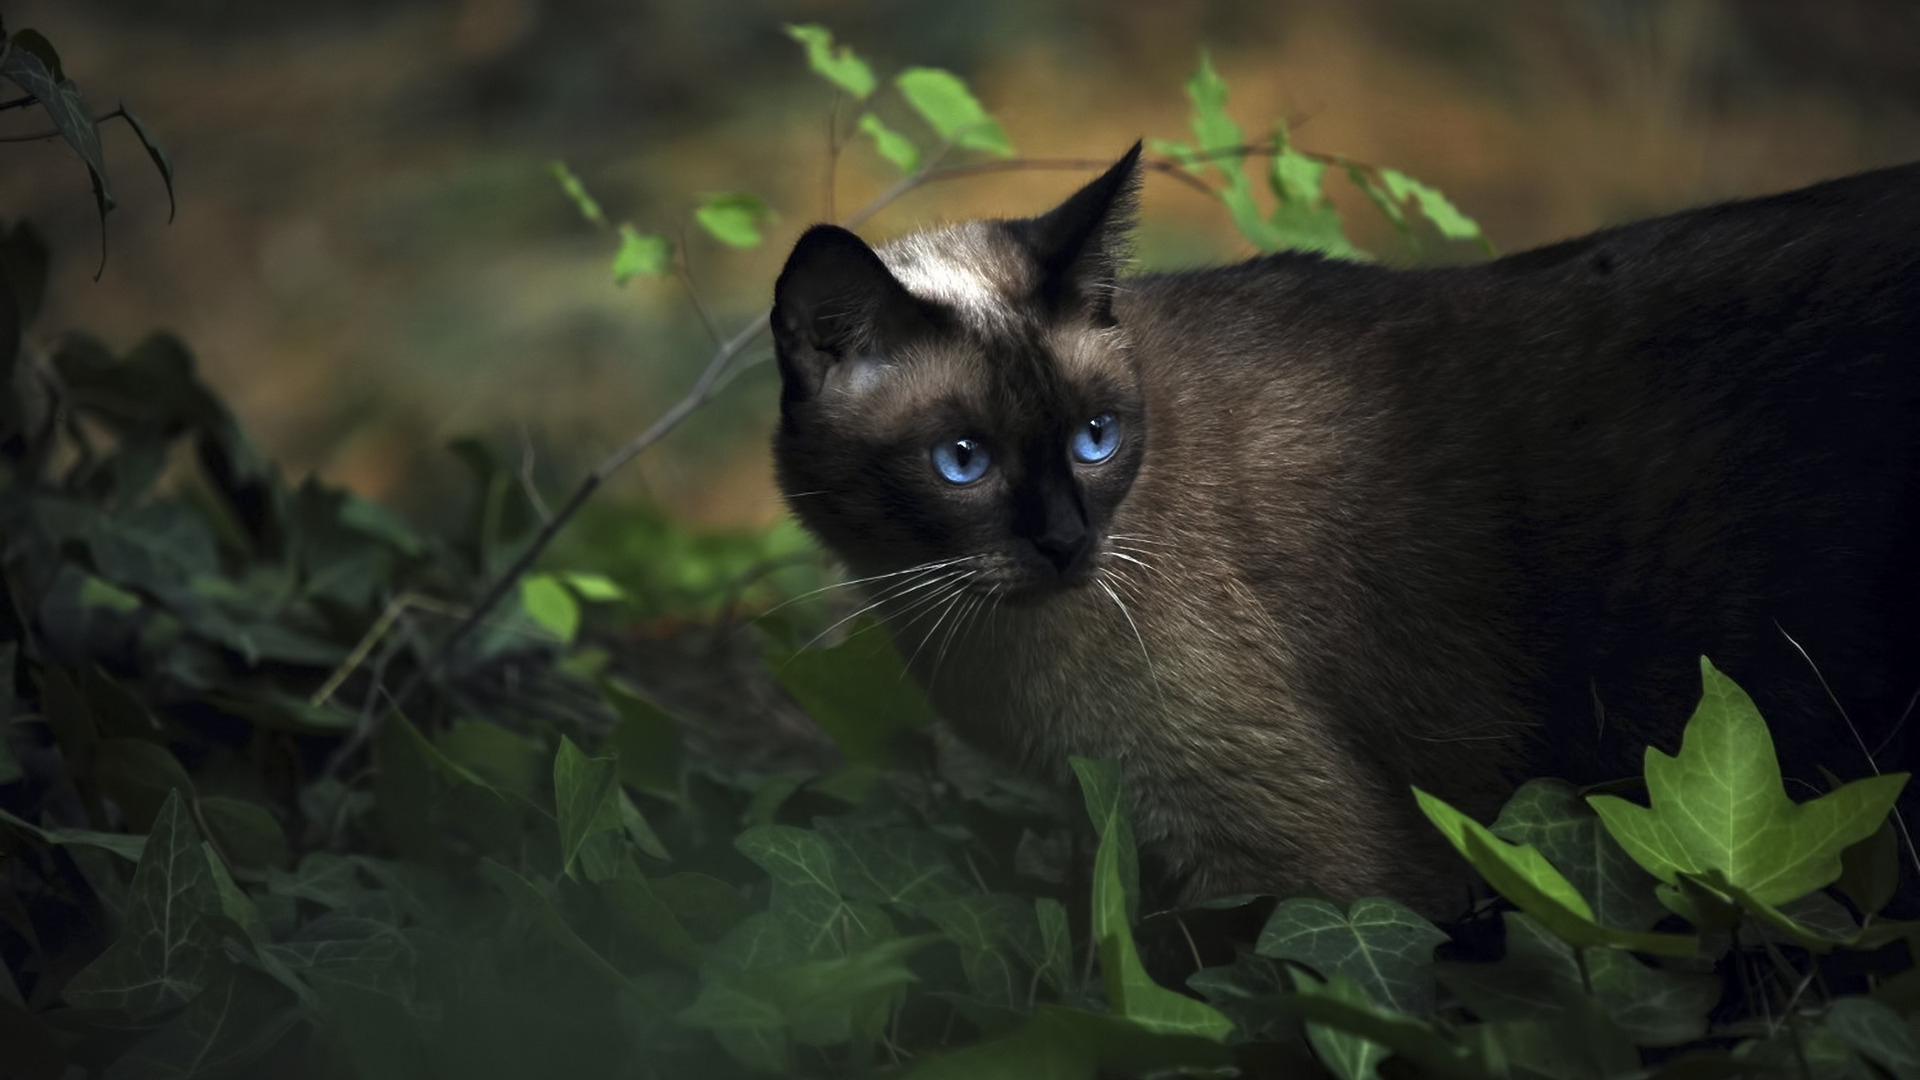 15933 download wallpaper Animals, Cats screensavers and pictures for free